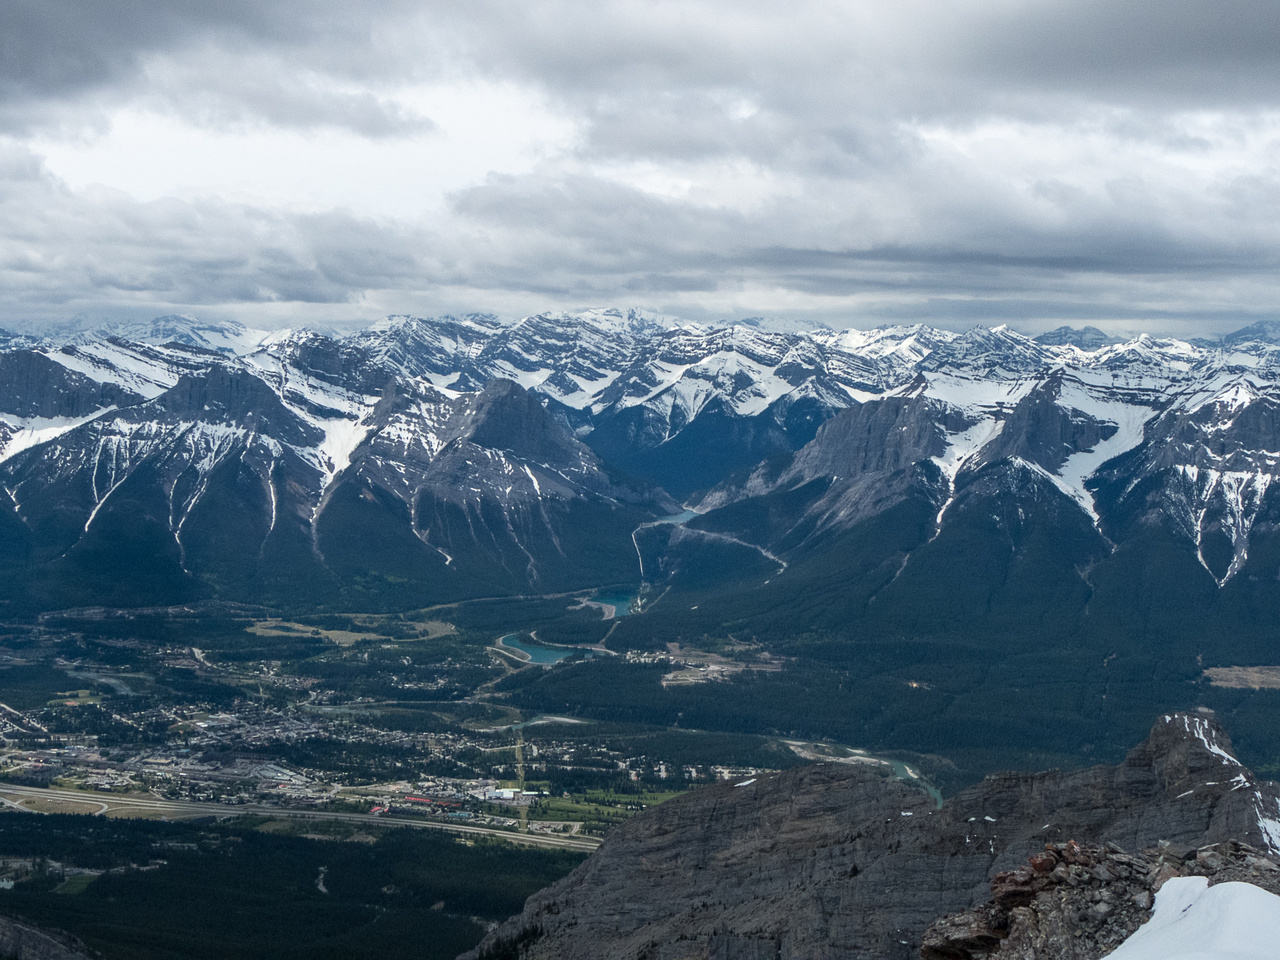 Looking over Canmore to EEOR and Ha Ling with the Goat Range towering beyond.